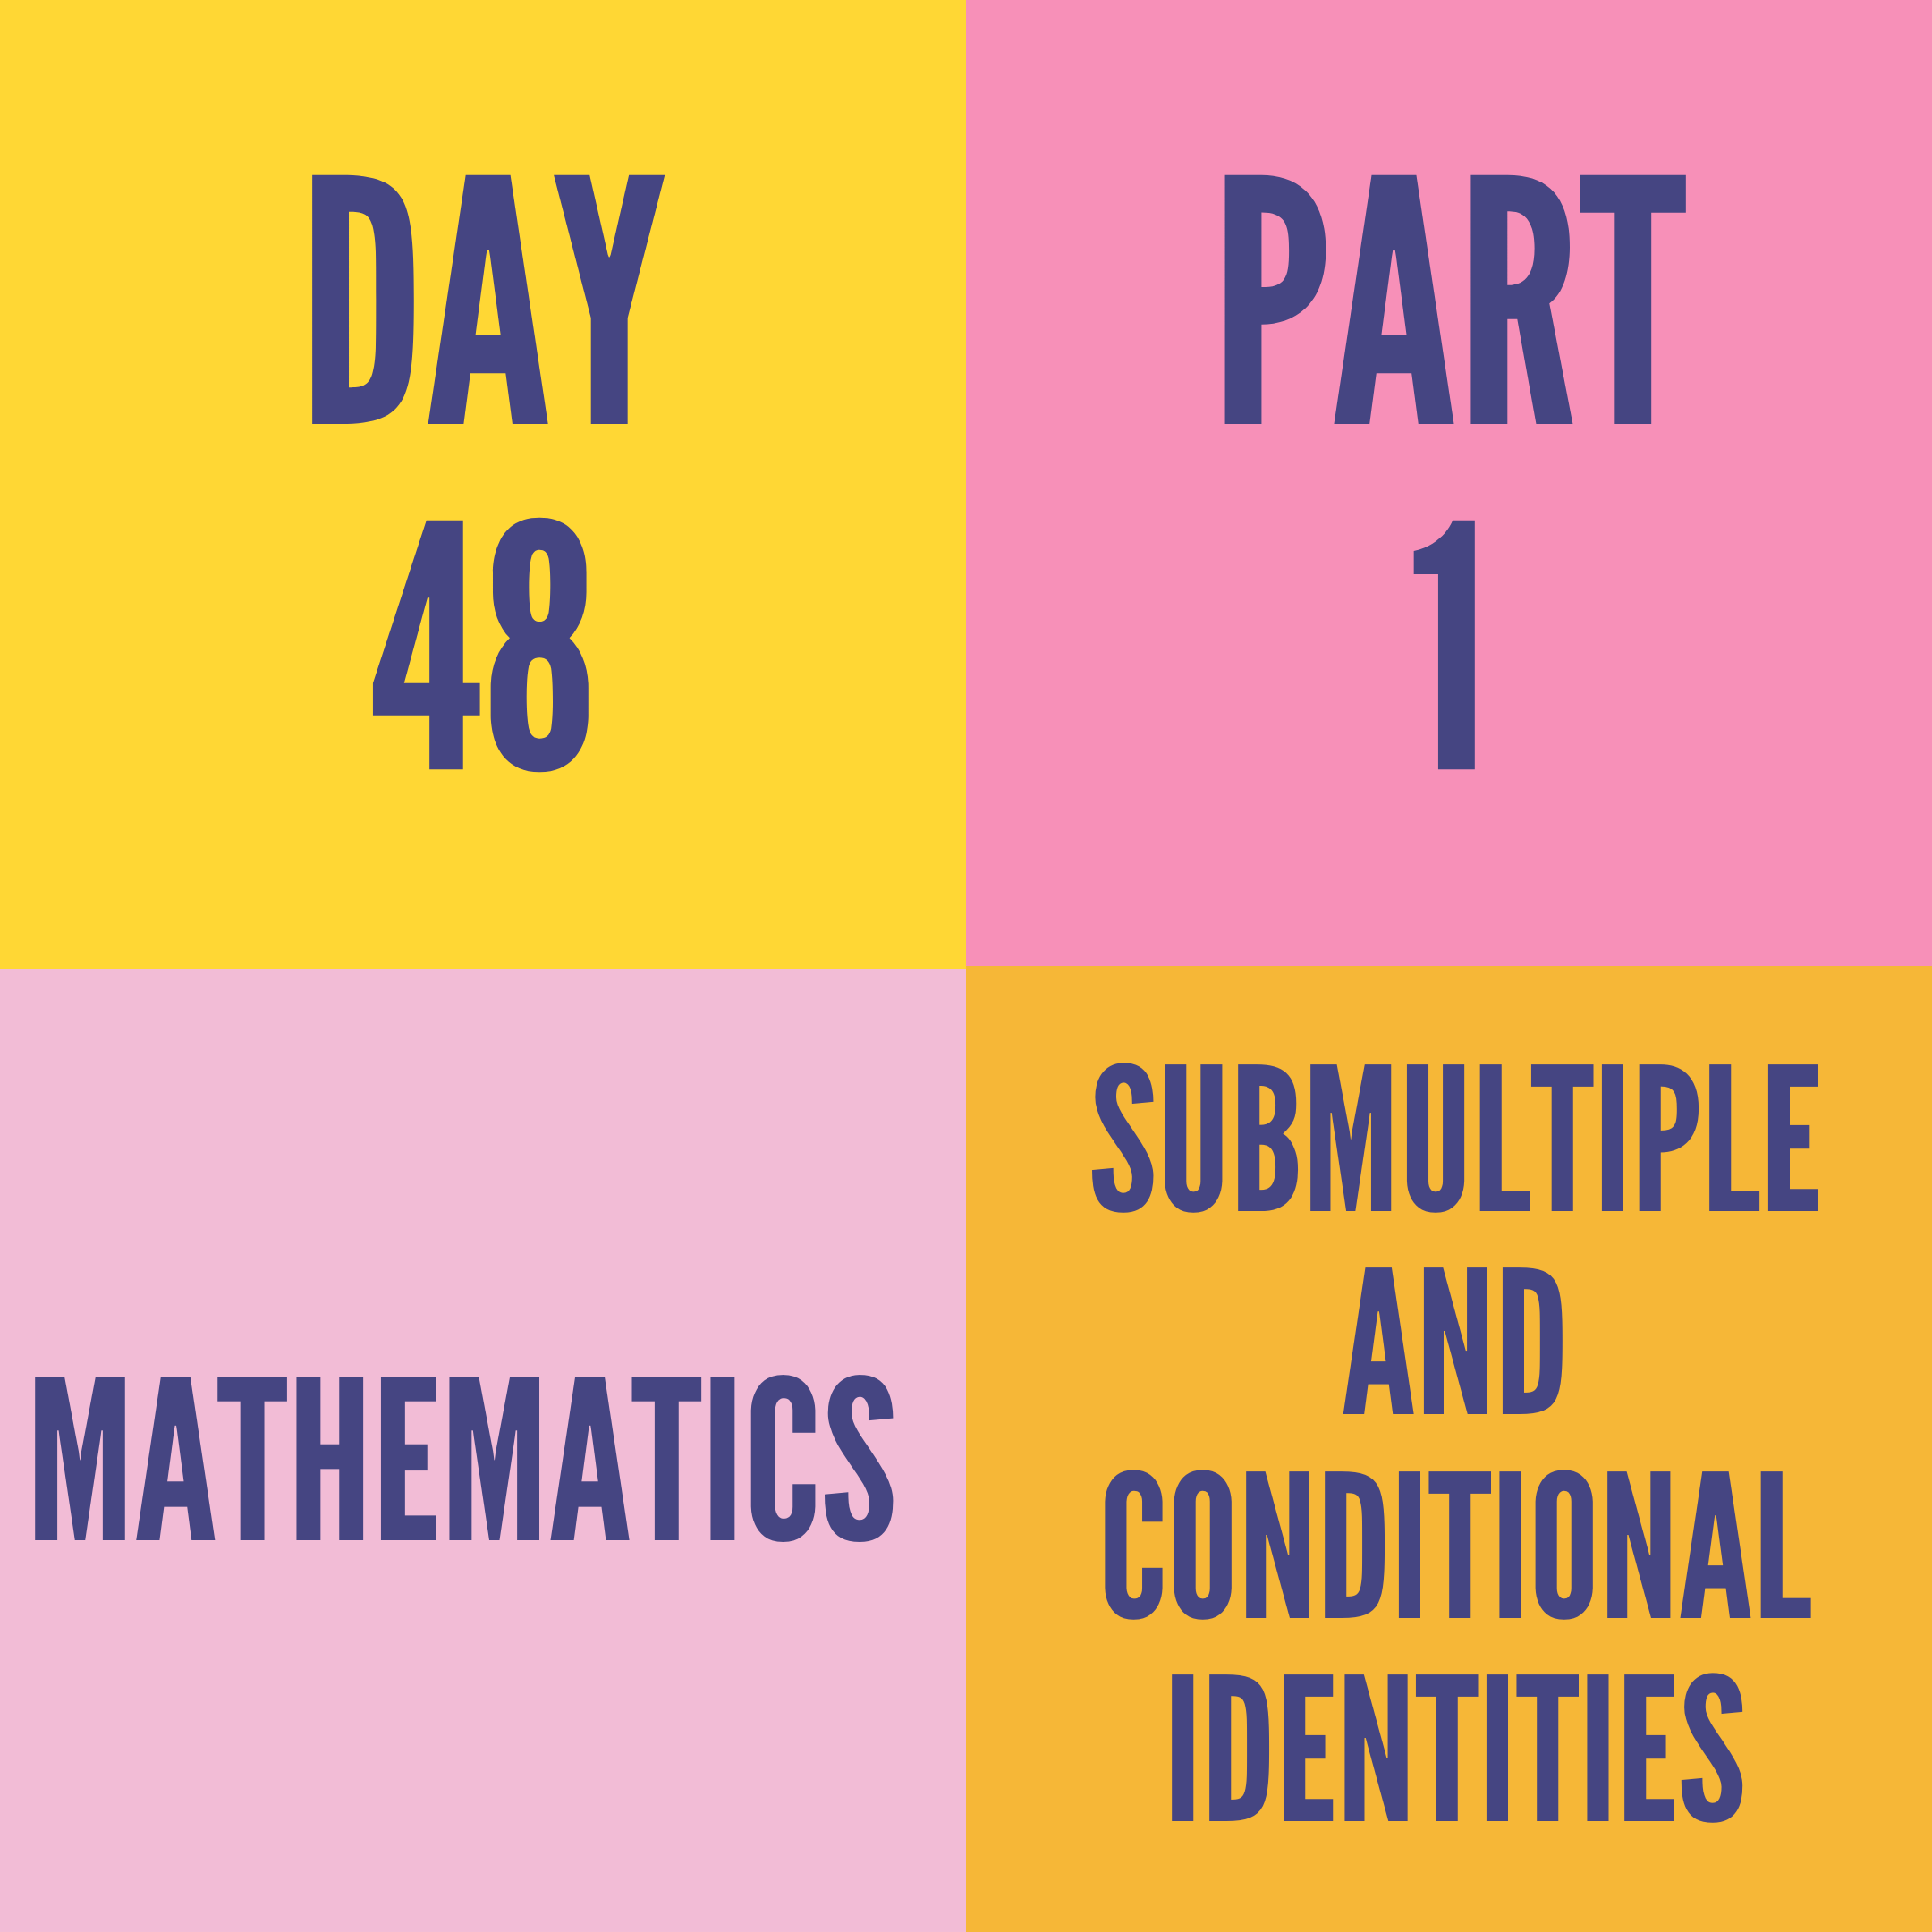 DAY-48 PART-1 SUBMULTIPLE AND CONDITIONAL IDENTITIES